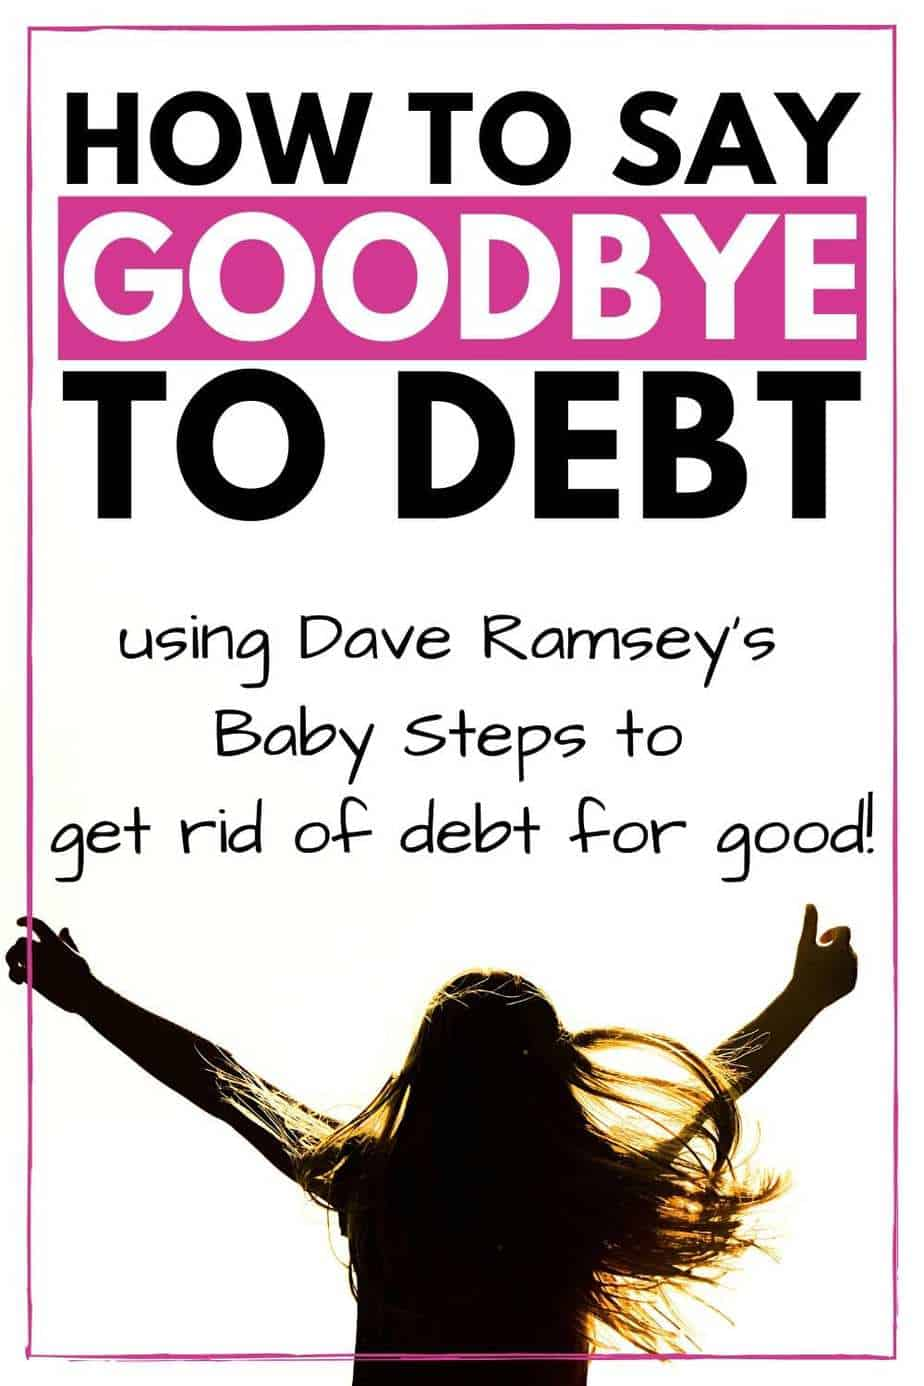 How to say goodbye to debt